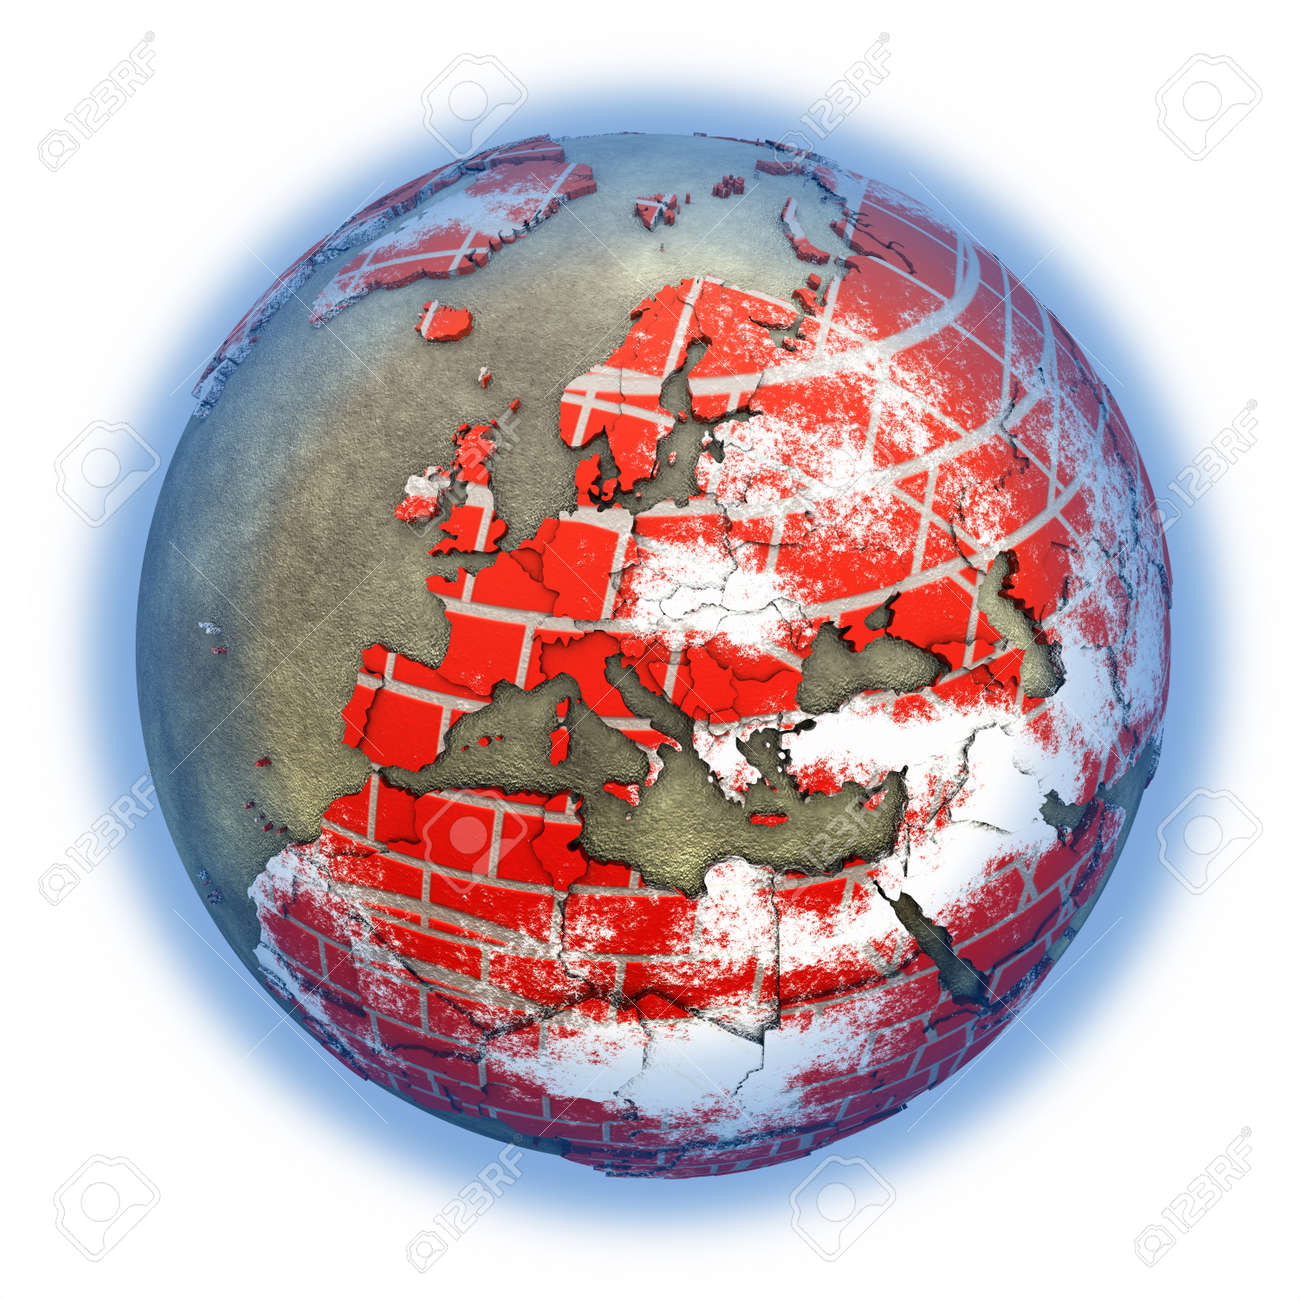 hight resolution of europe on brick wall model of planet earth with continents made of red bricks and oceans